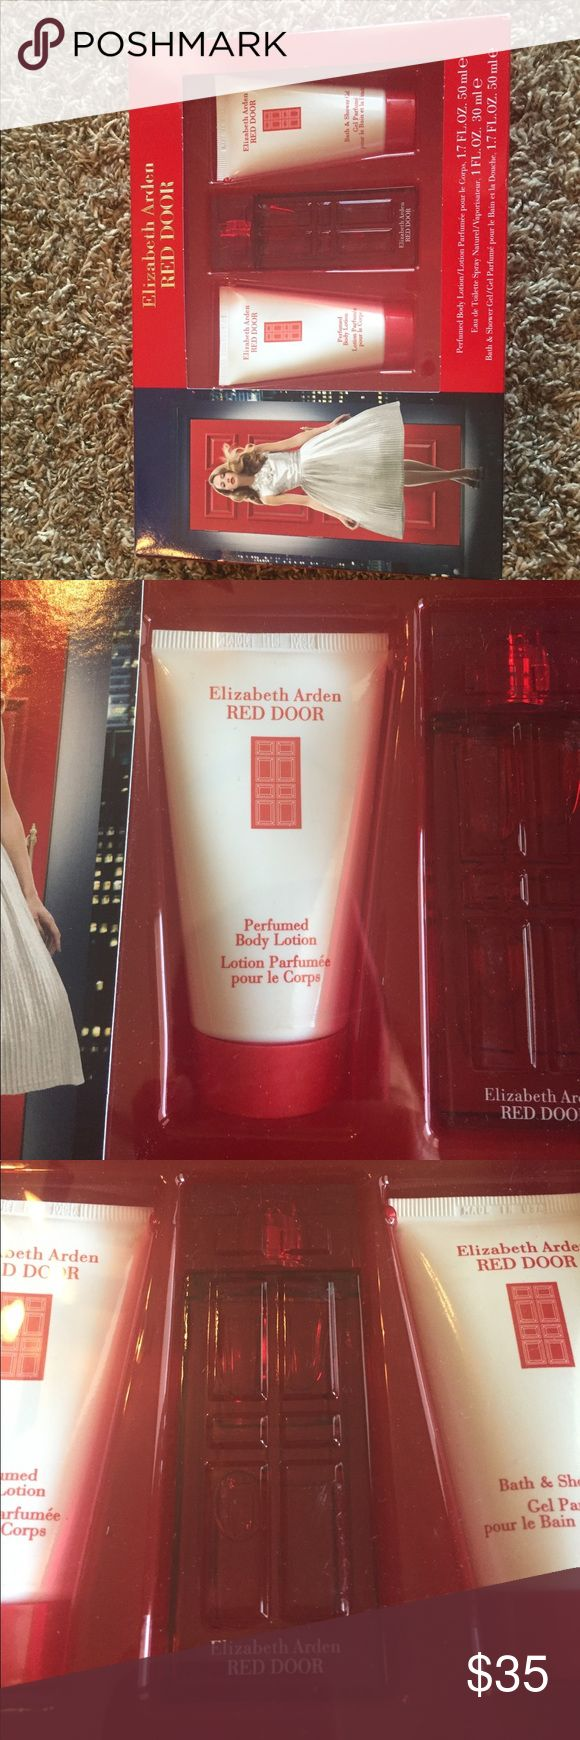 Red Door by Elizabeth Arden perfume set Never opened brand new Red Door perfume, body lotion, & shower. Elizabeth Arden Makeup